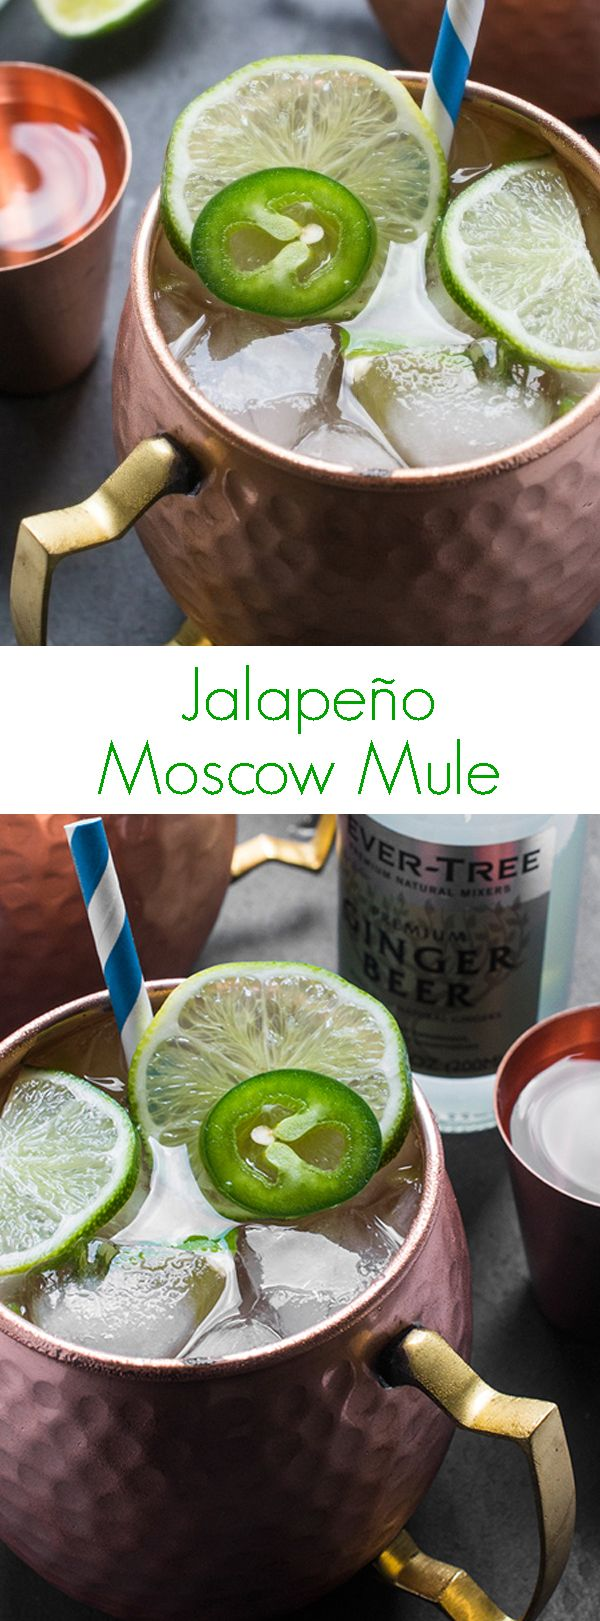 Jalapeno Moscow Mule - A spicy twist on the traditional Moscow mule recipe that's perfect for the summer!